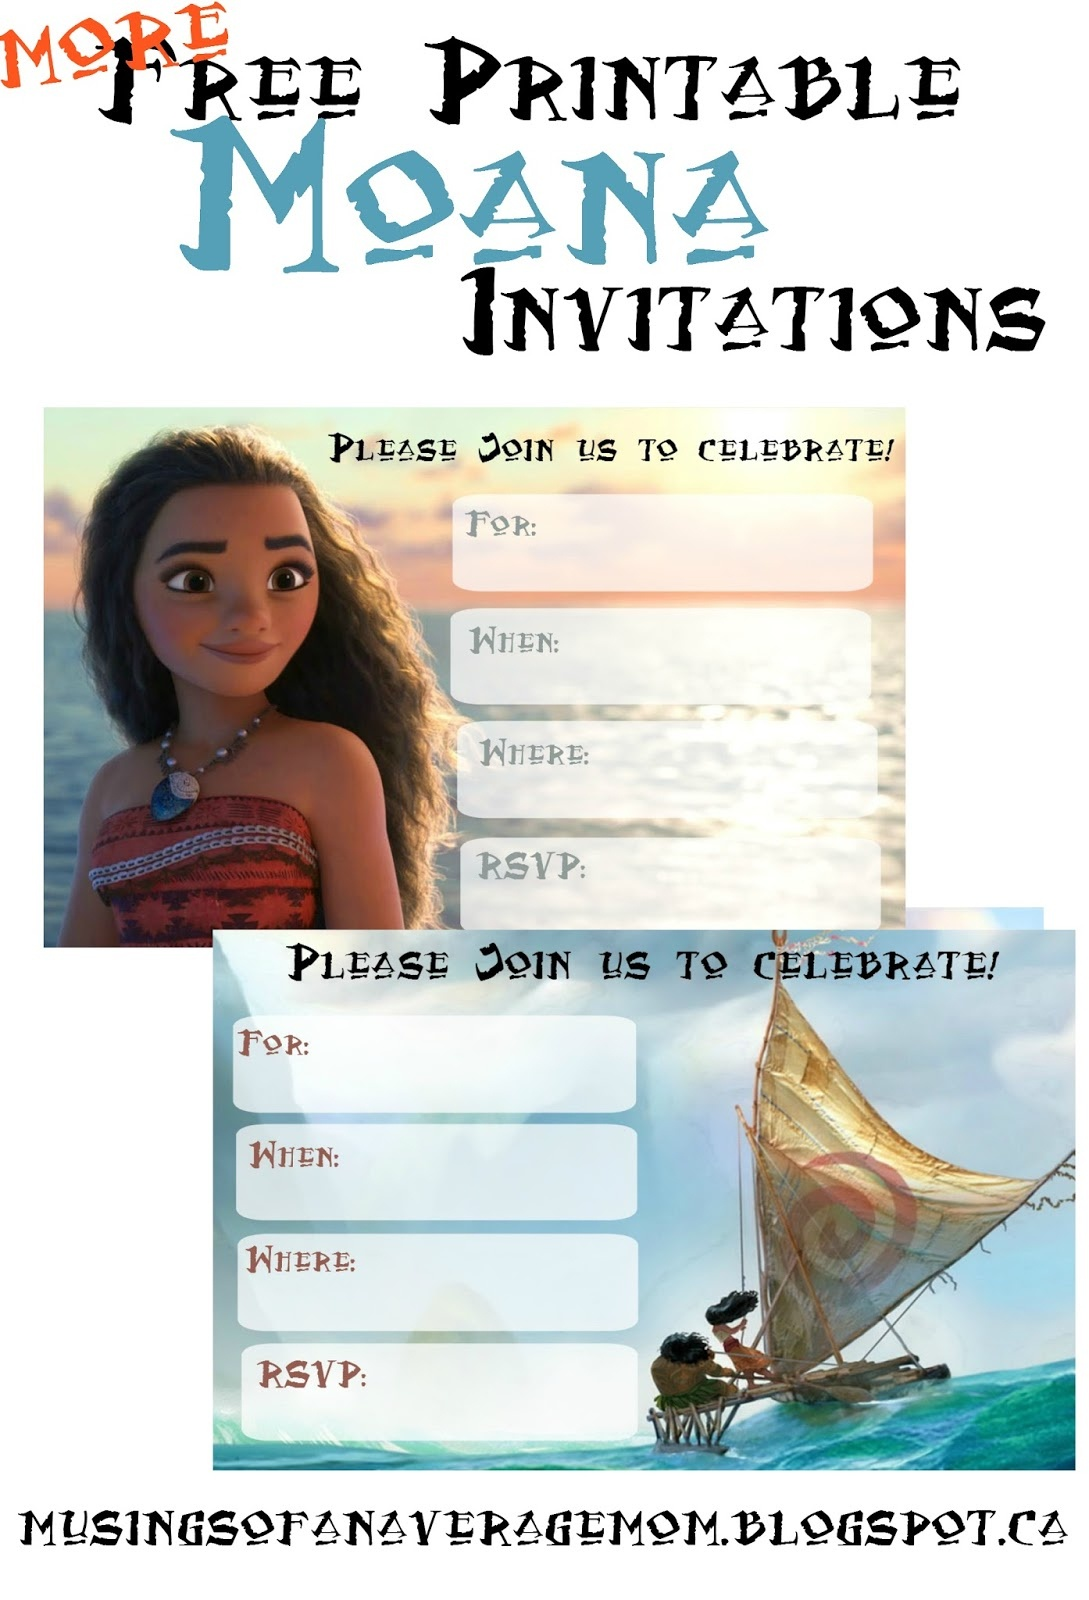 Musings Of An Average Mom: Free Printable Moana Invitations 2 - Free Printable Moana Invitations